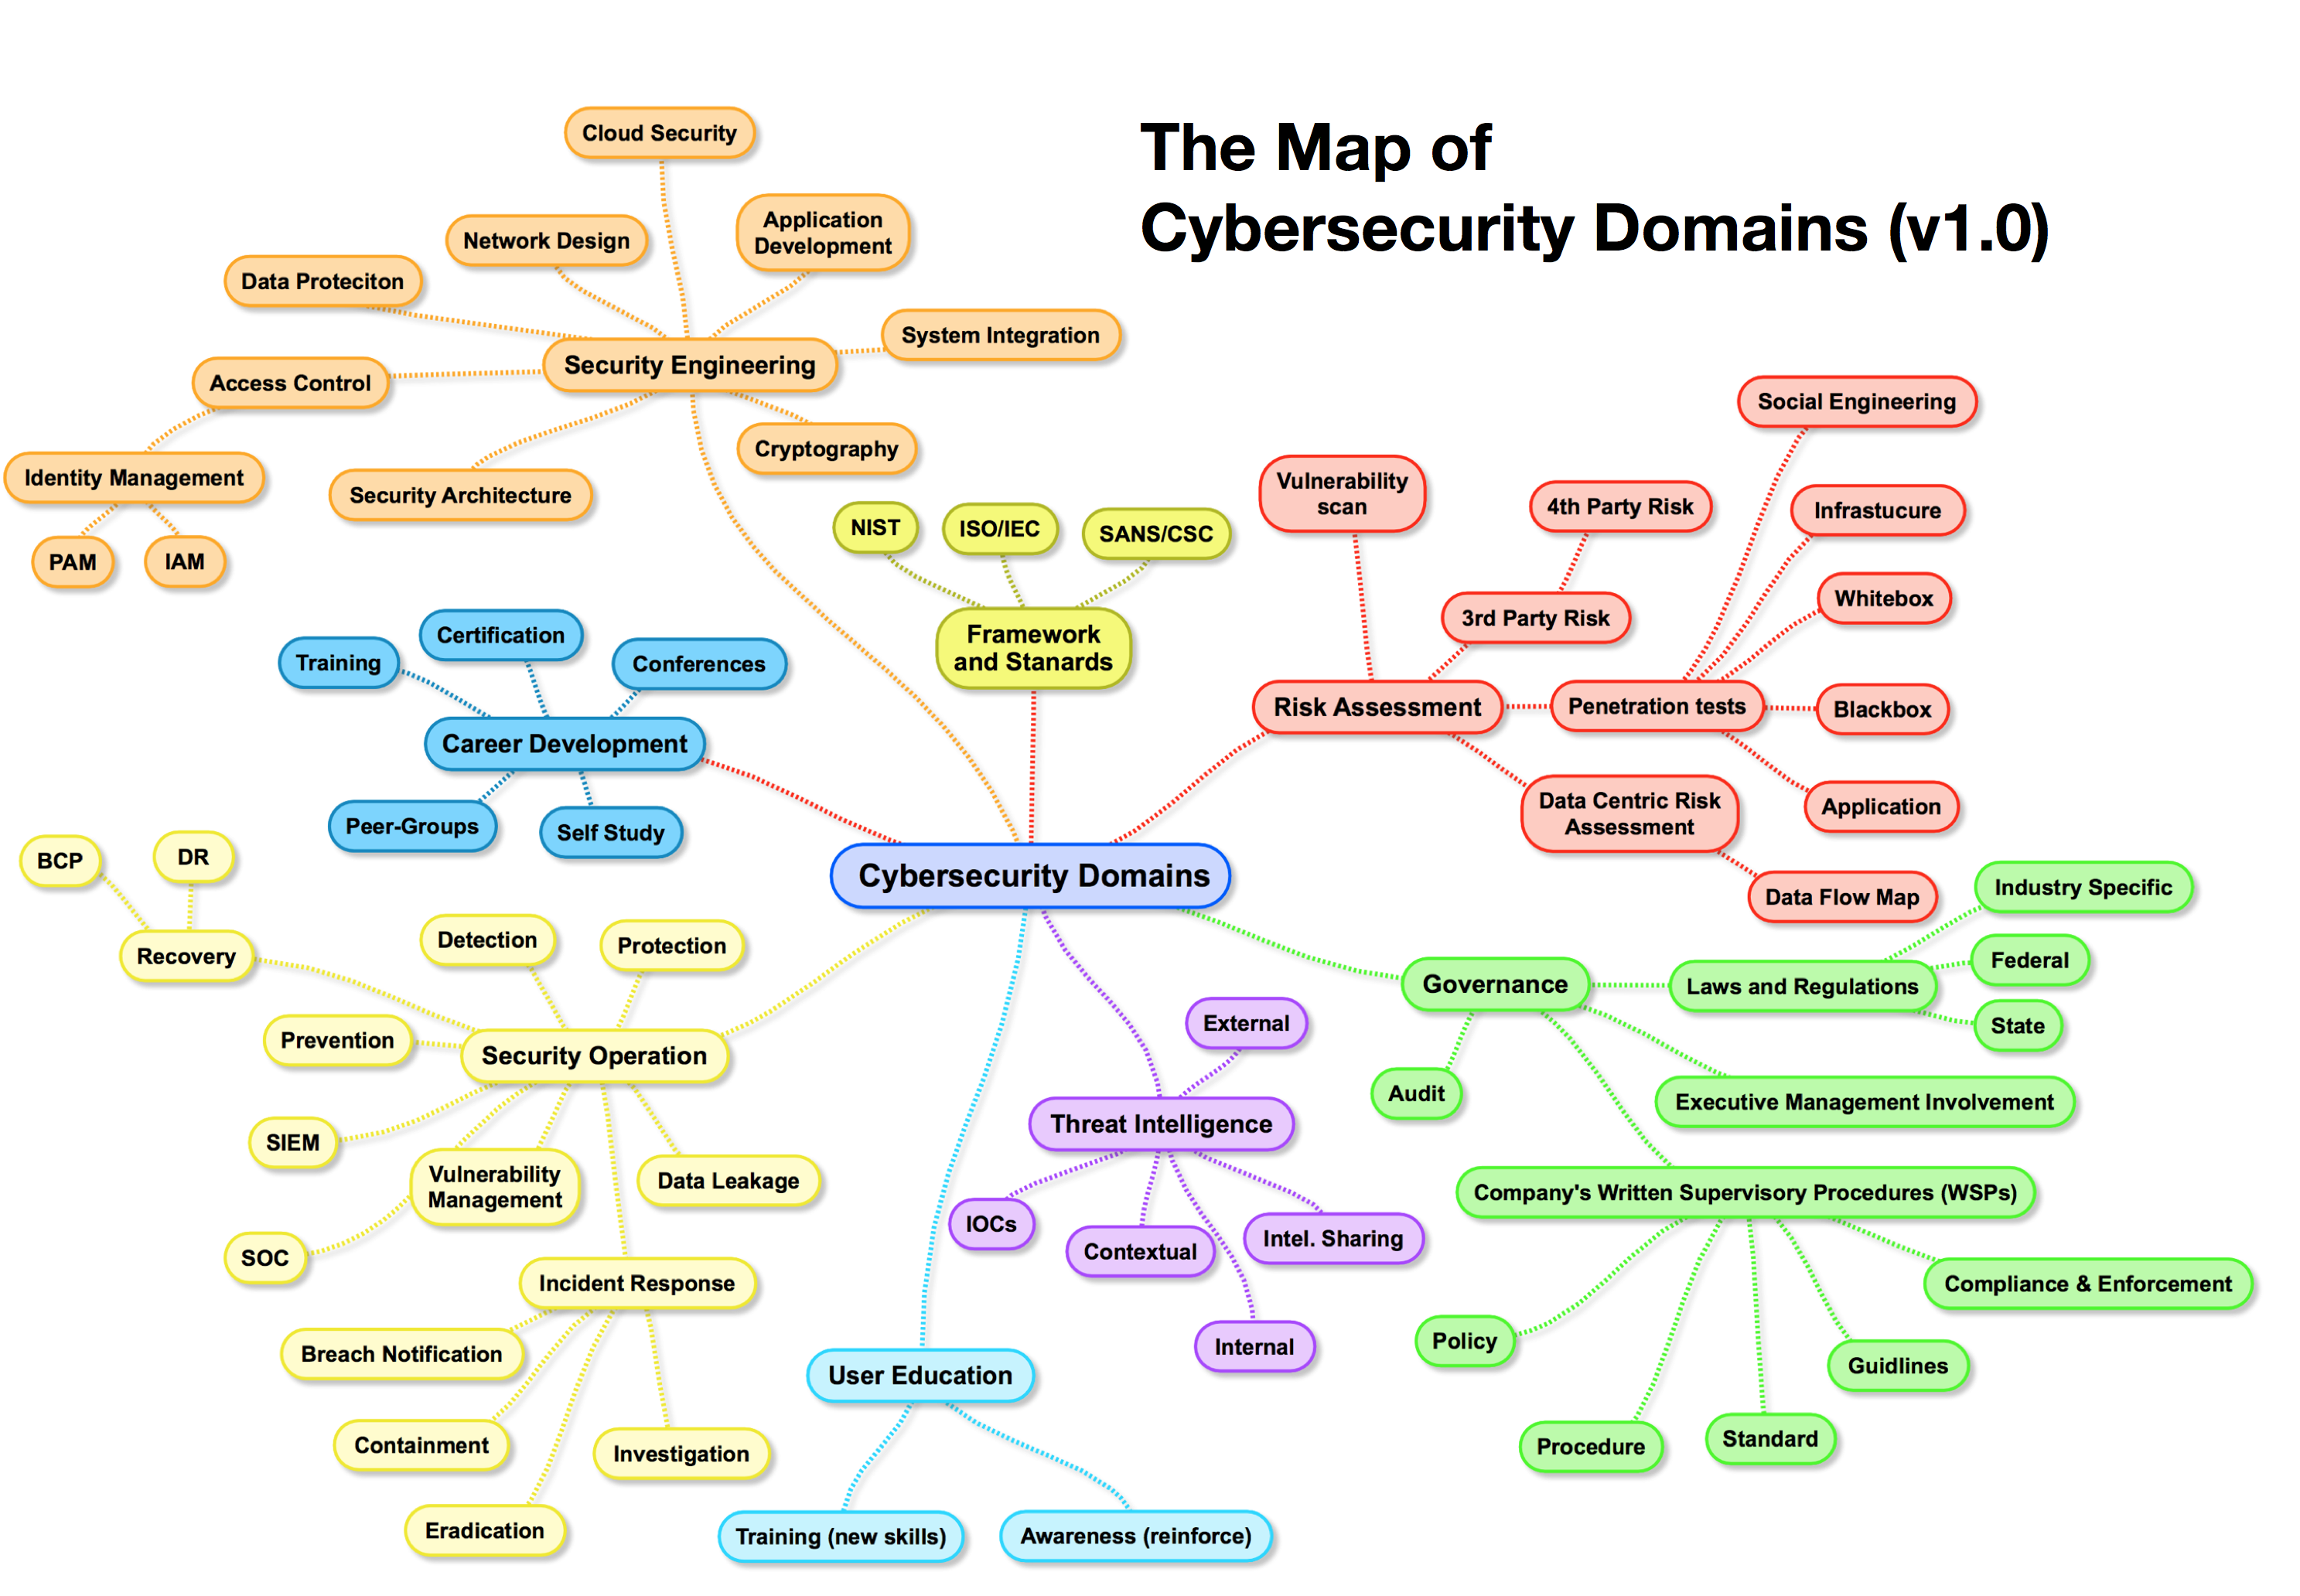 cybersecurity-map-1-0